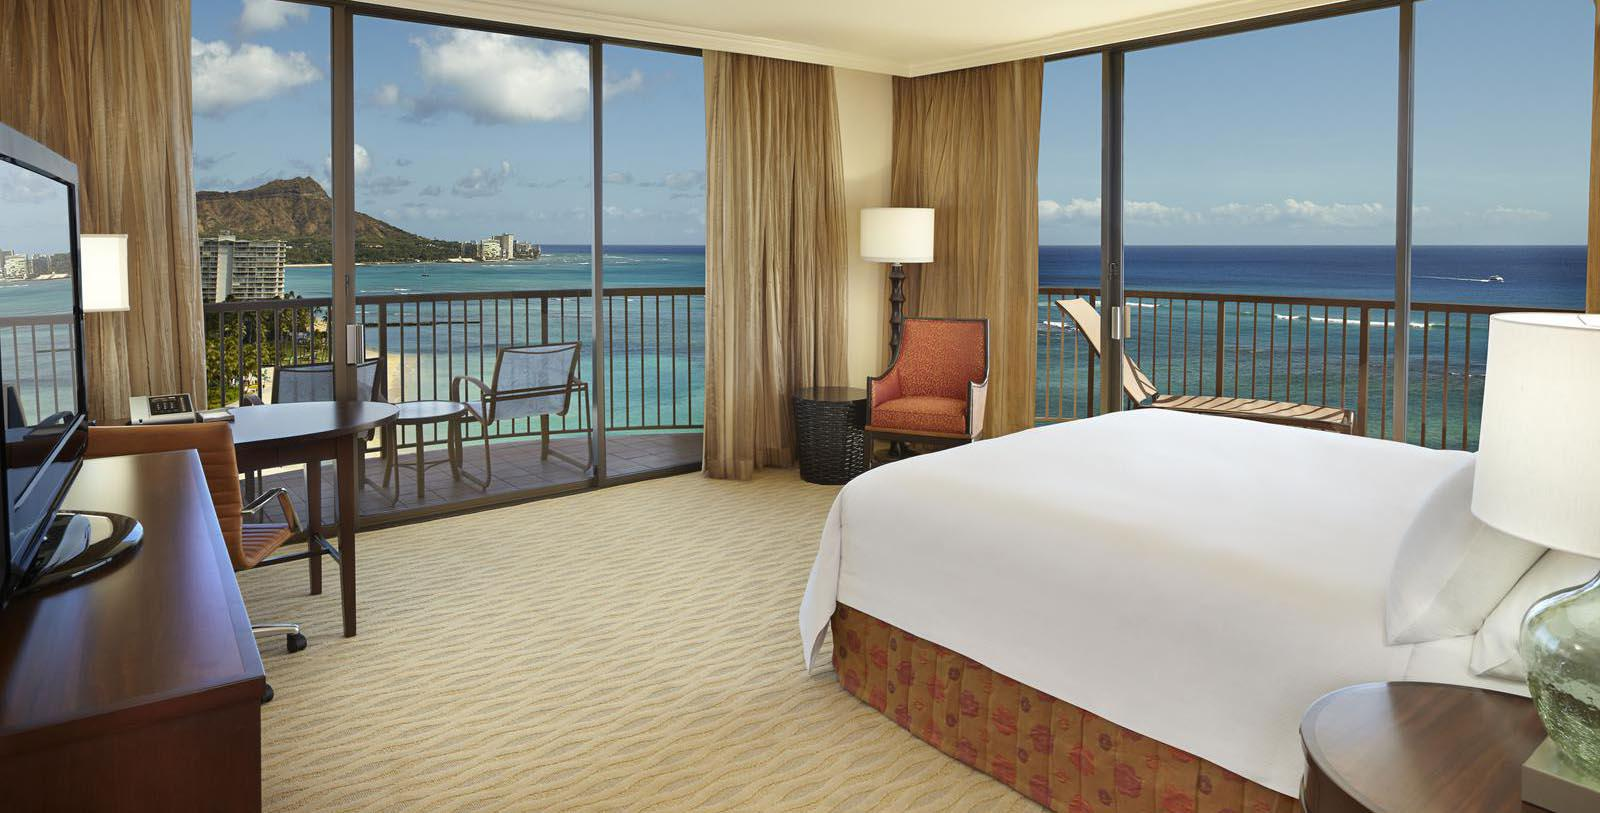 Image of guestroom Hilton Hawaiian Village® Waikiki Beach Resort, 1957, Member of Historic Hotels of America, in Honolulu, Hawaii, Location Map